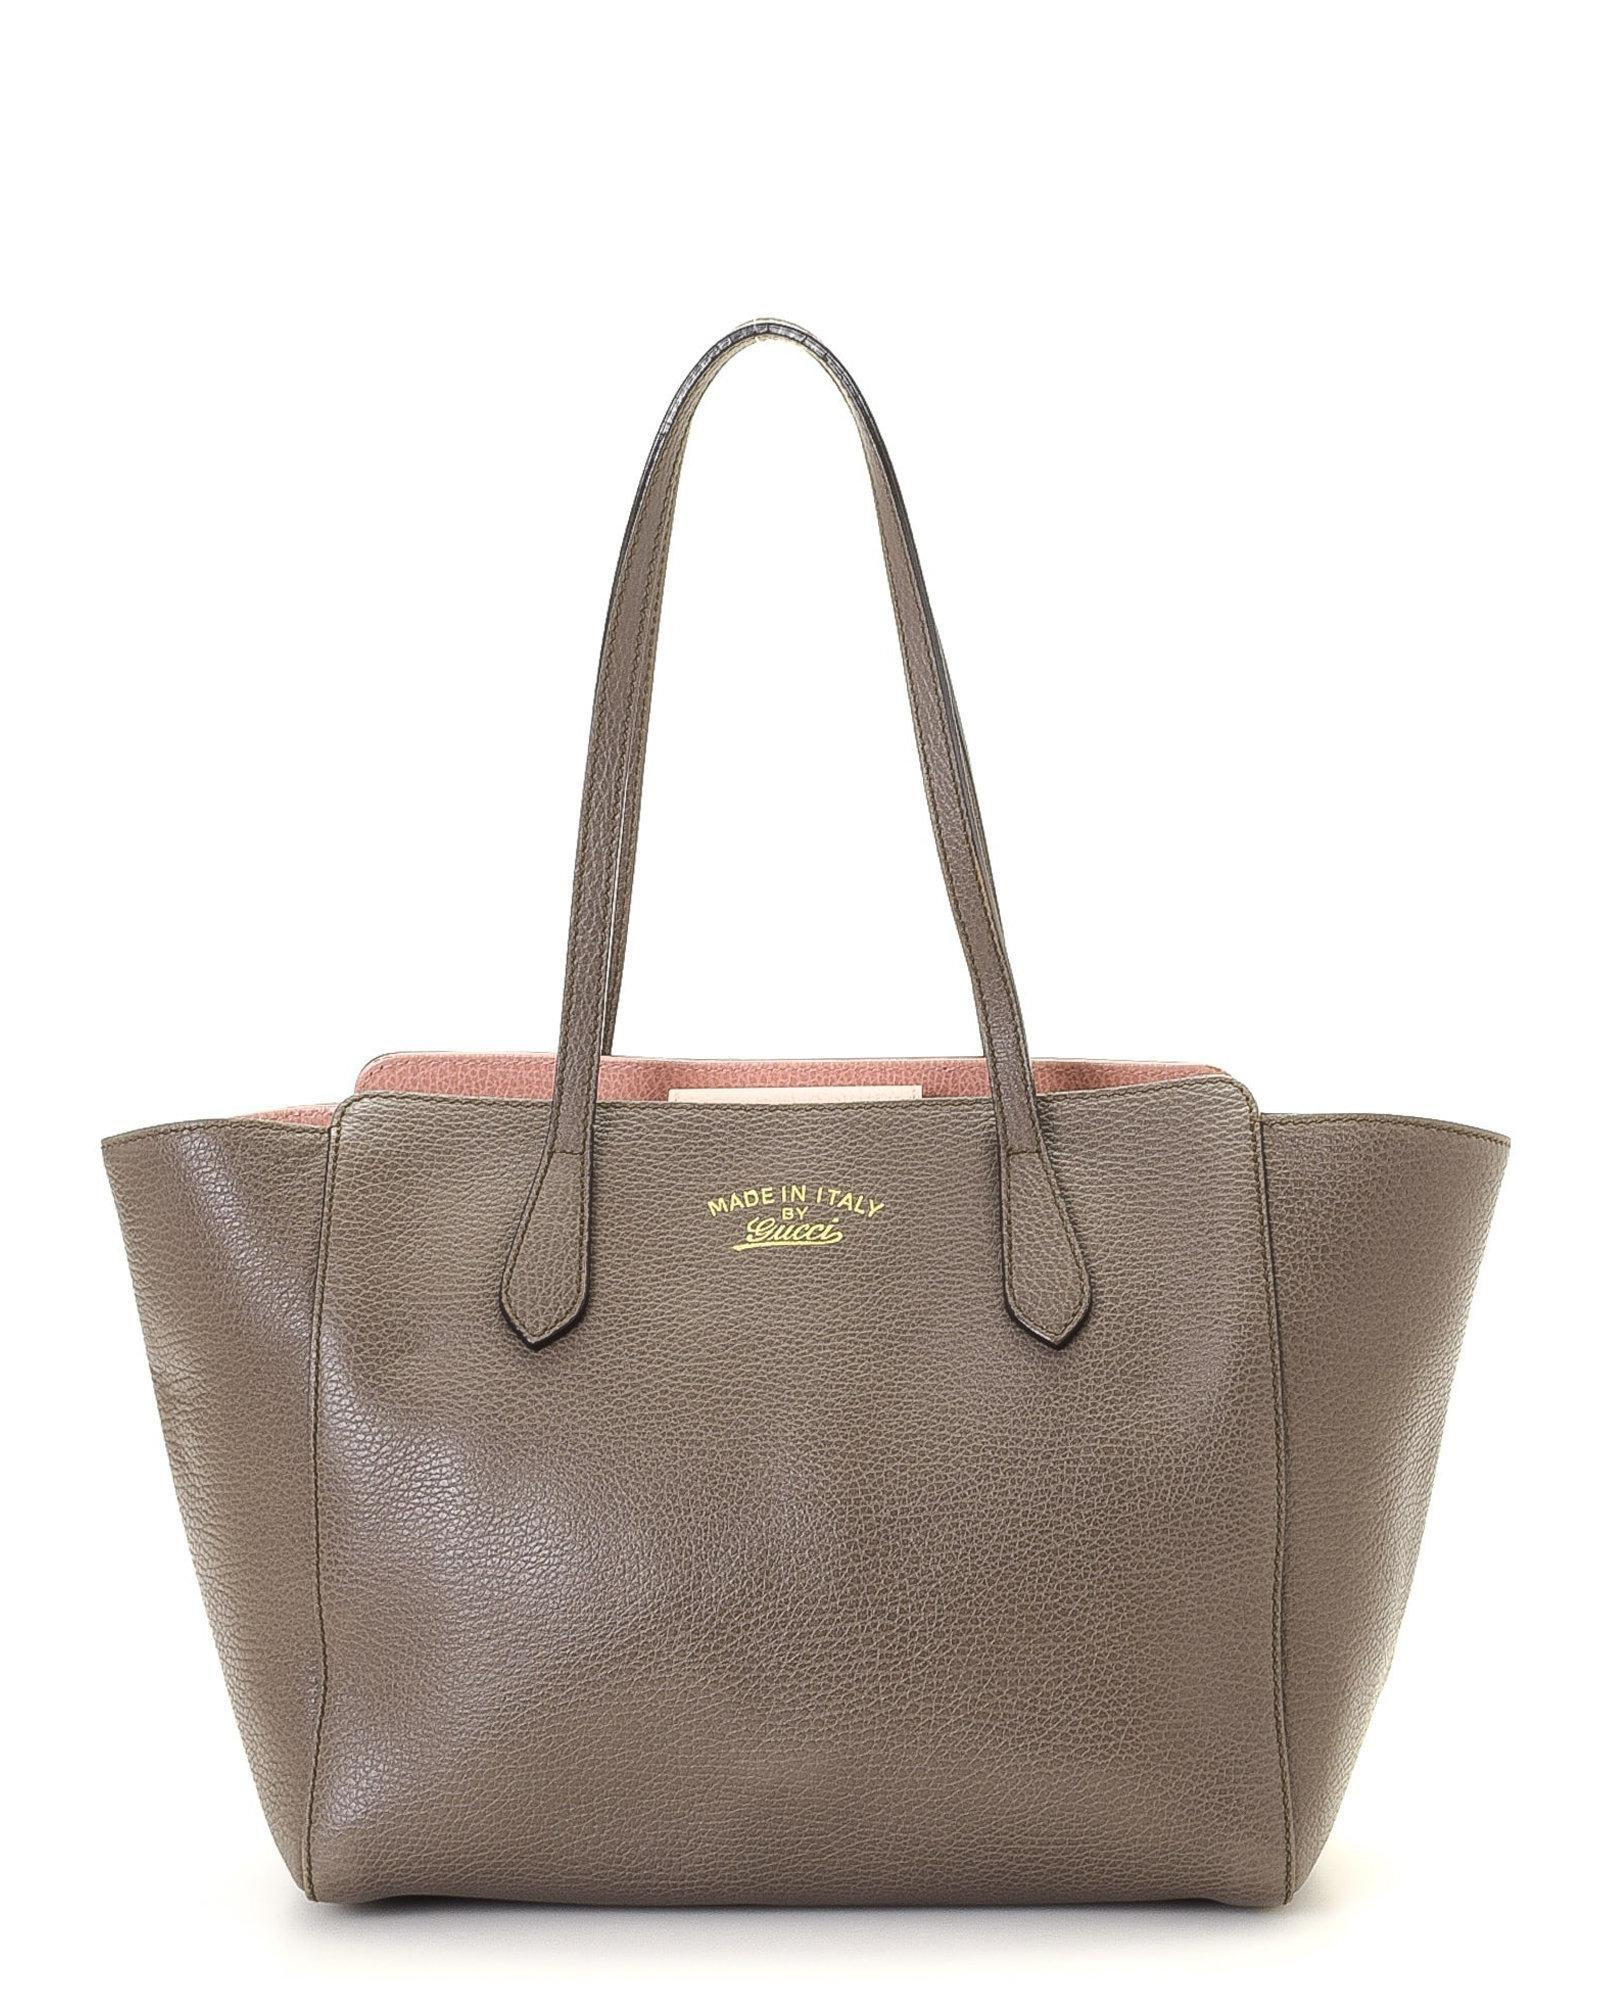 0aa30e33d7f3ad Lyst - Gucci Grey Tote - Vintage in Gray